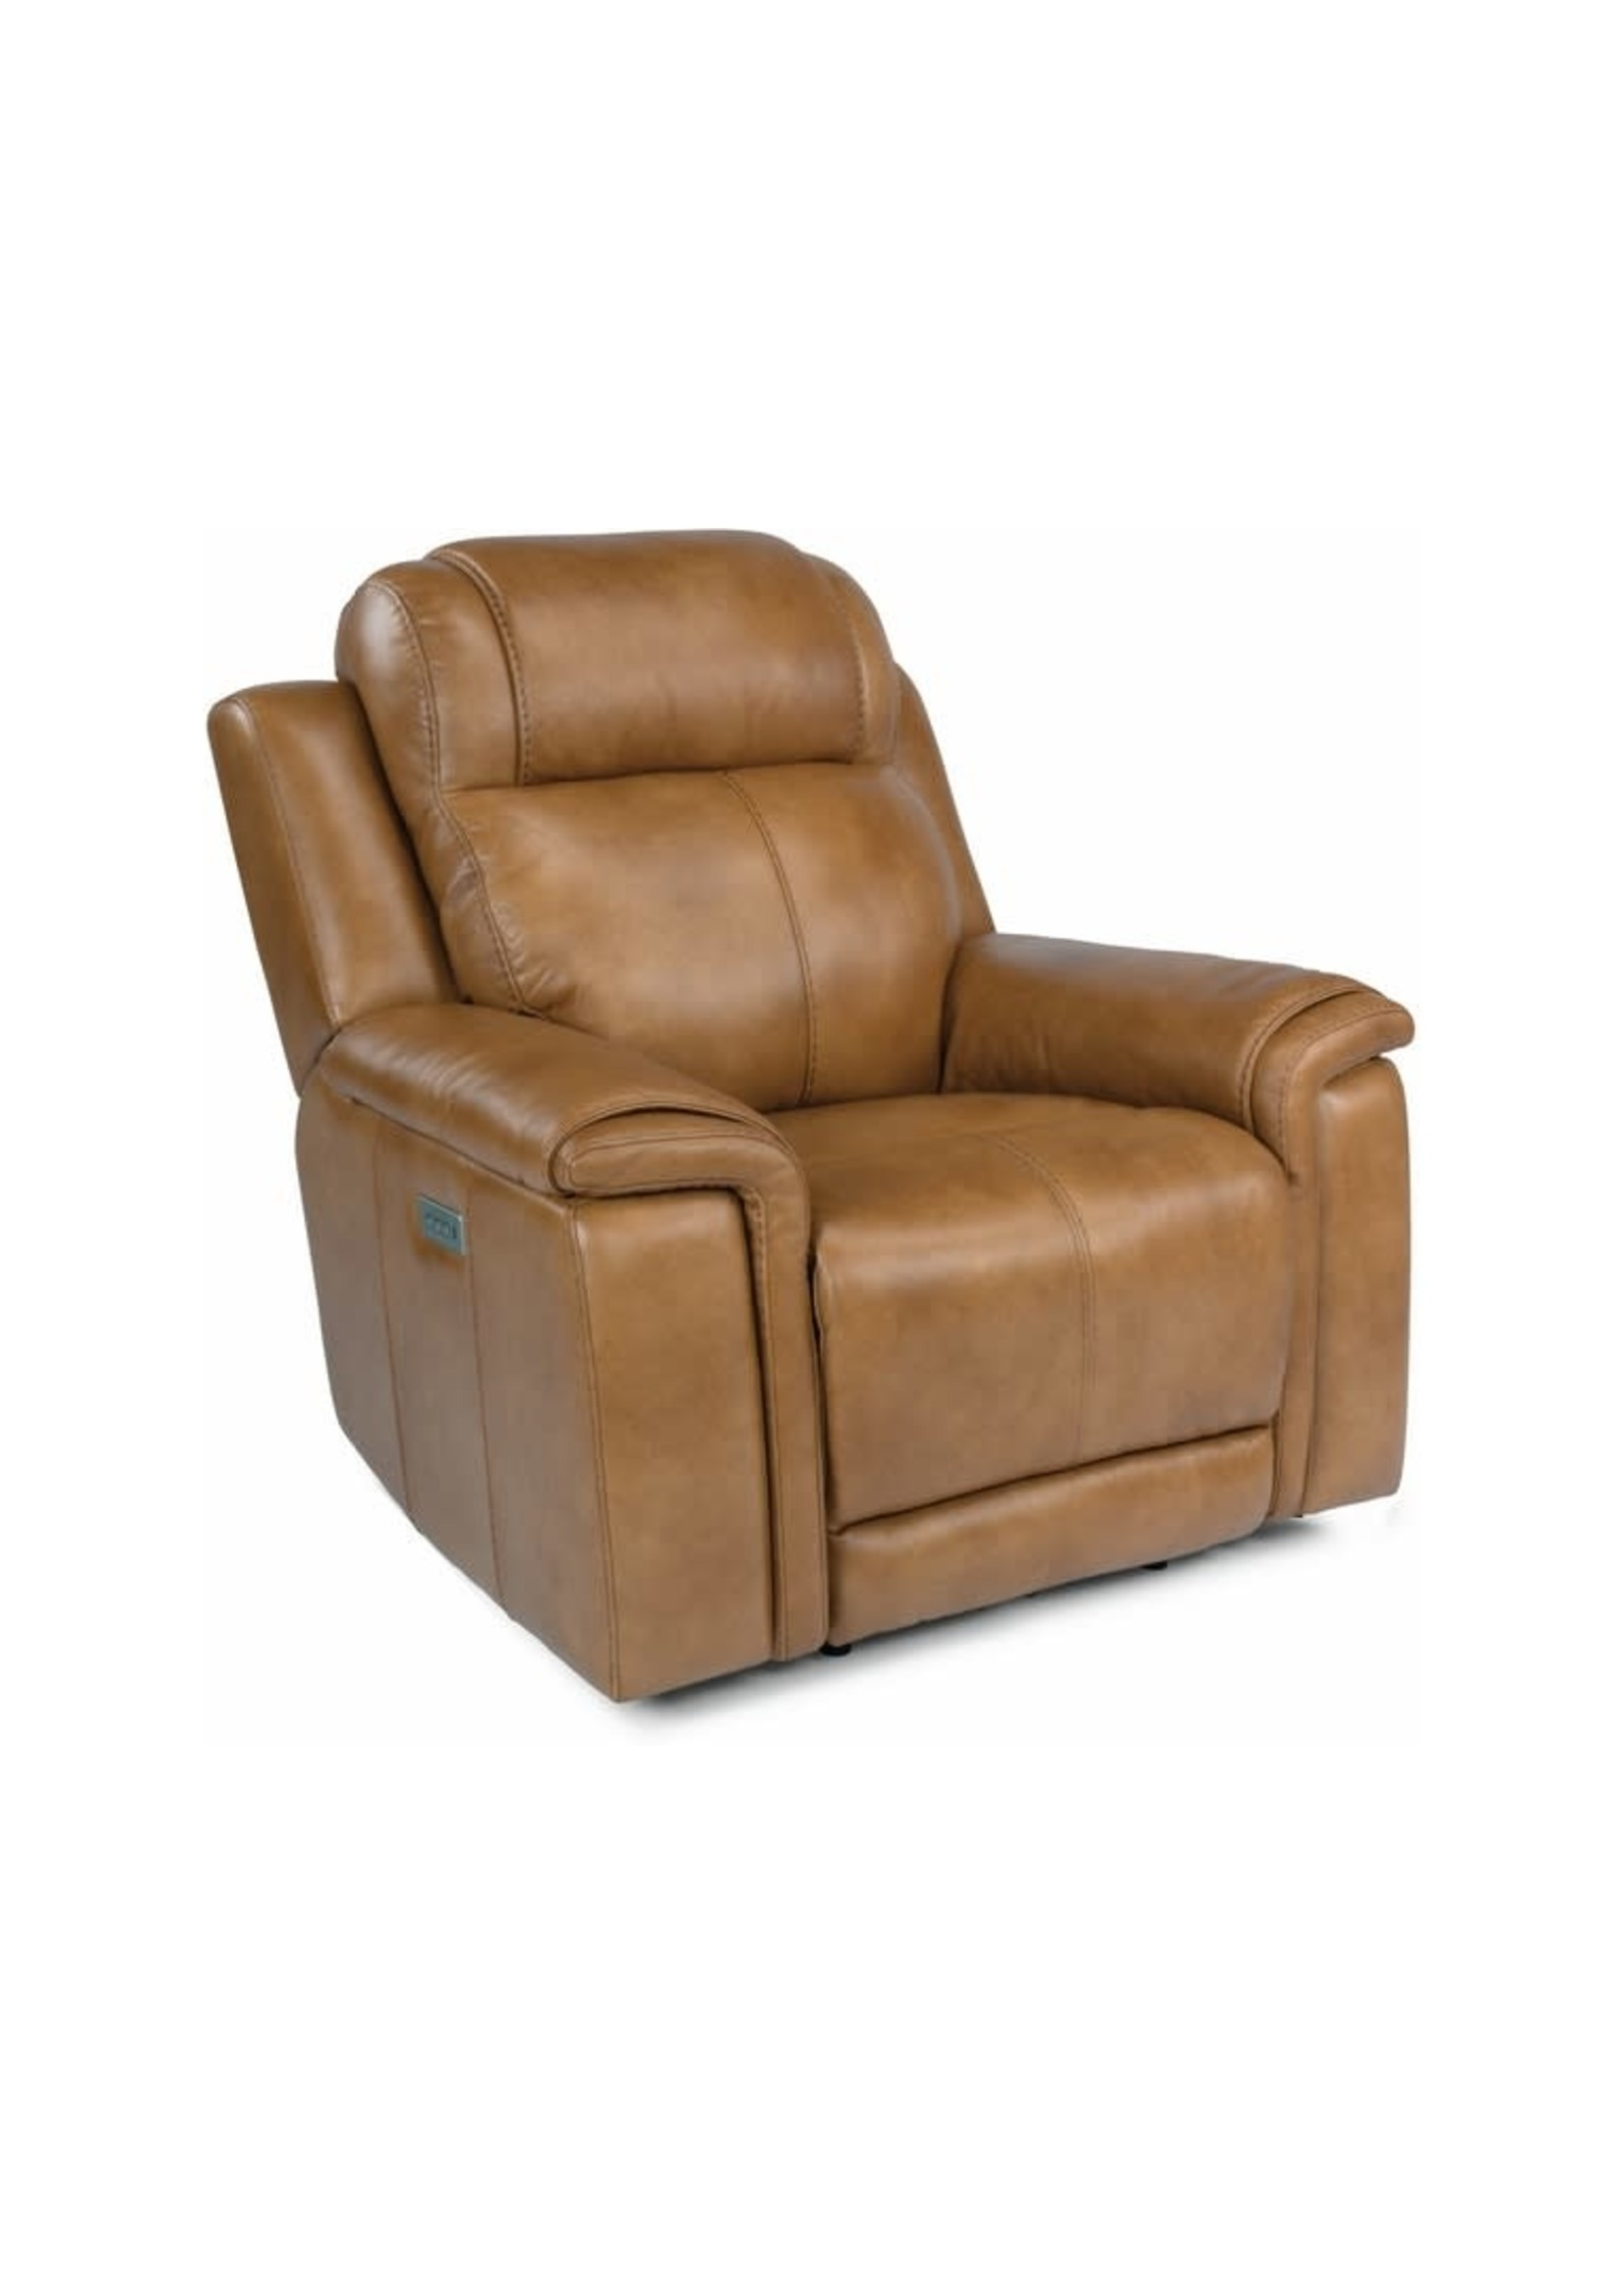 KINGSLEY PWR RECLINER W/ PWR HDRST